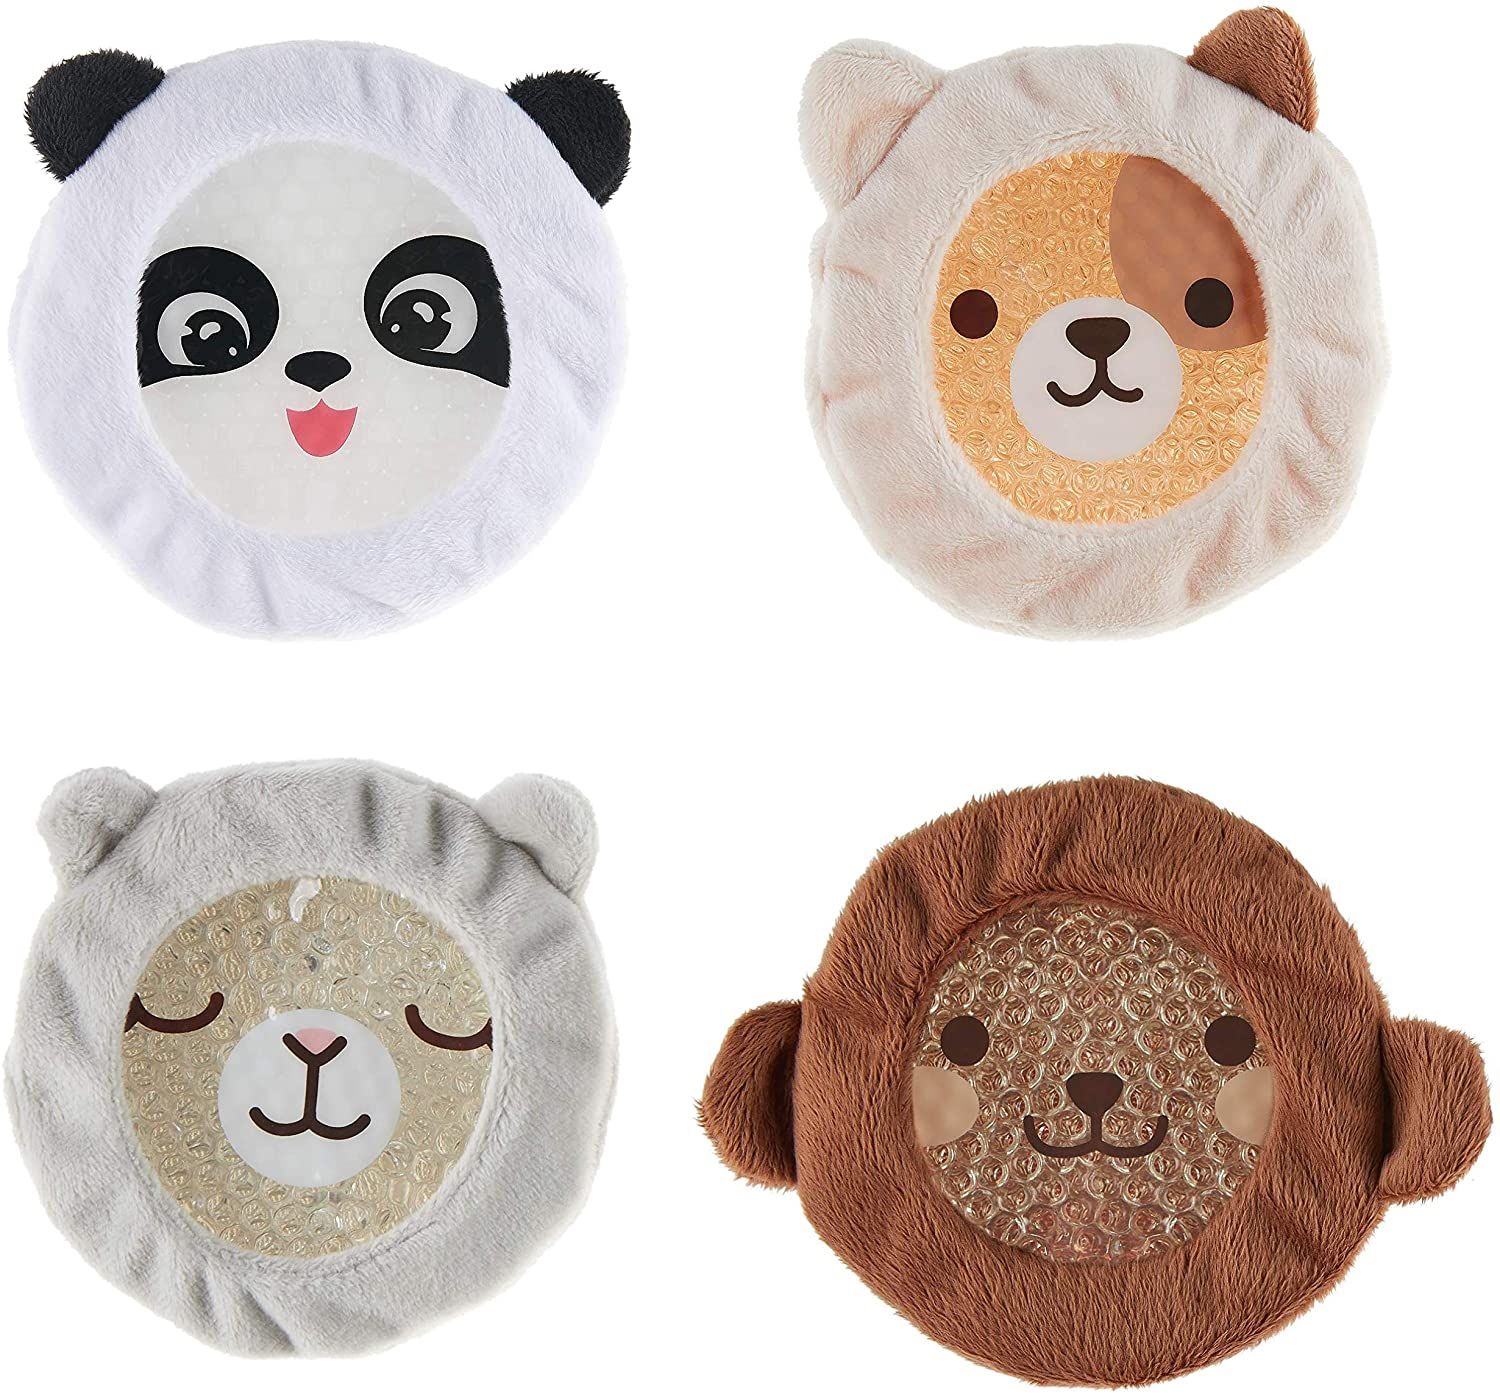 INDIGO CHILD : Premium Dual Action Hot or Cold Gel Packs | 4 Pack | Soft Plush Fabric Sleeves |Our AdorableZoo Animals Design | Durable Gel Bead Wrap